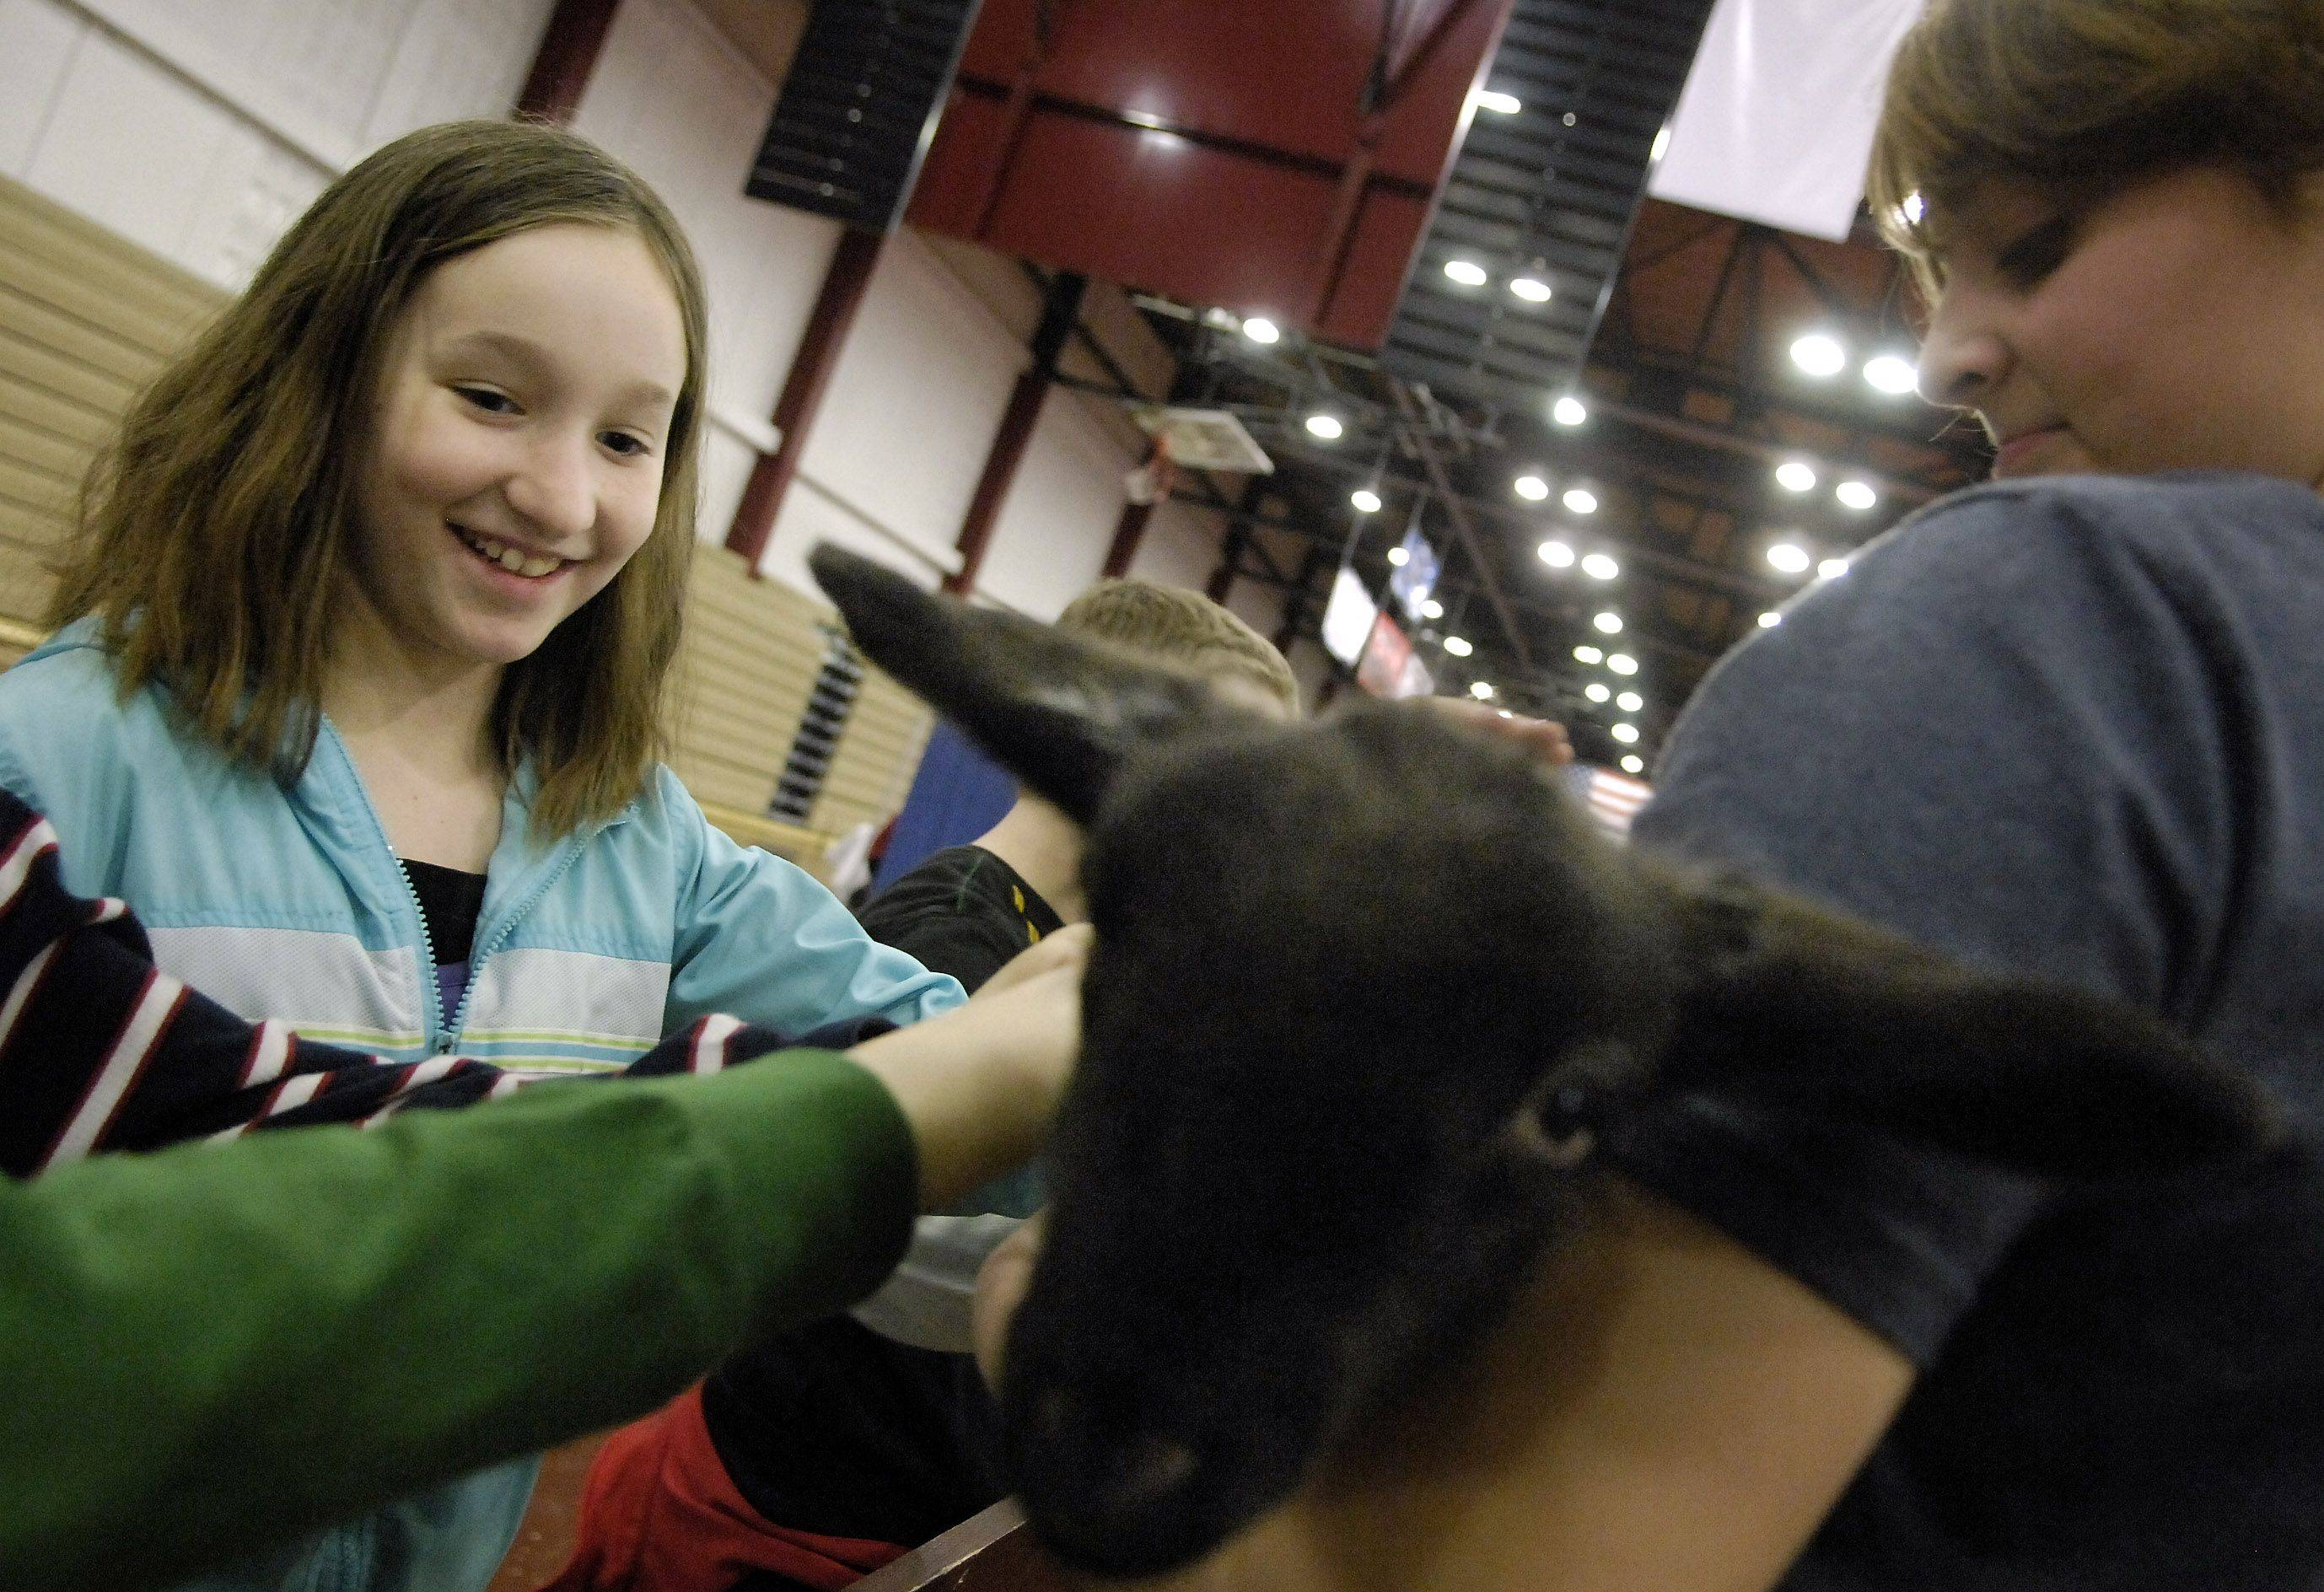 Fourth grader Violet Milligan from Davis Elementary in St. charles pets a two-week-old lamb during Ag Days at Mooseheart in Batavia Wednesday. The three-day event is put on by the Kane County Farm Bureau and is held during National Agriculture Week. The lamb is being held by 4-H volunteer Allison Steininger, a freshman at Kaneland High School.